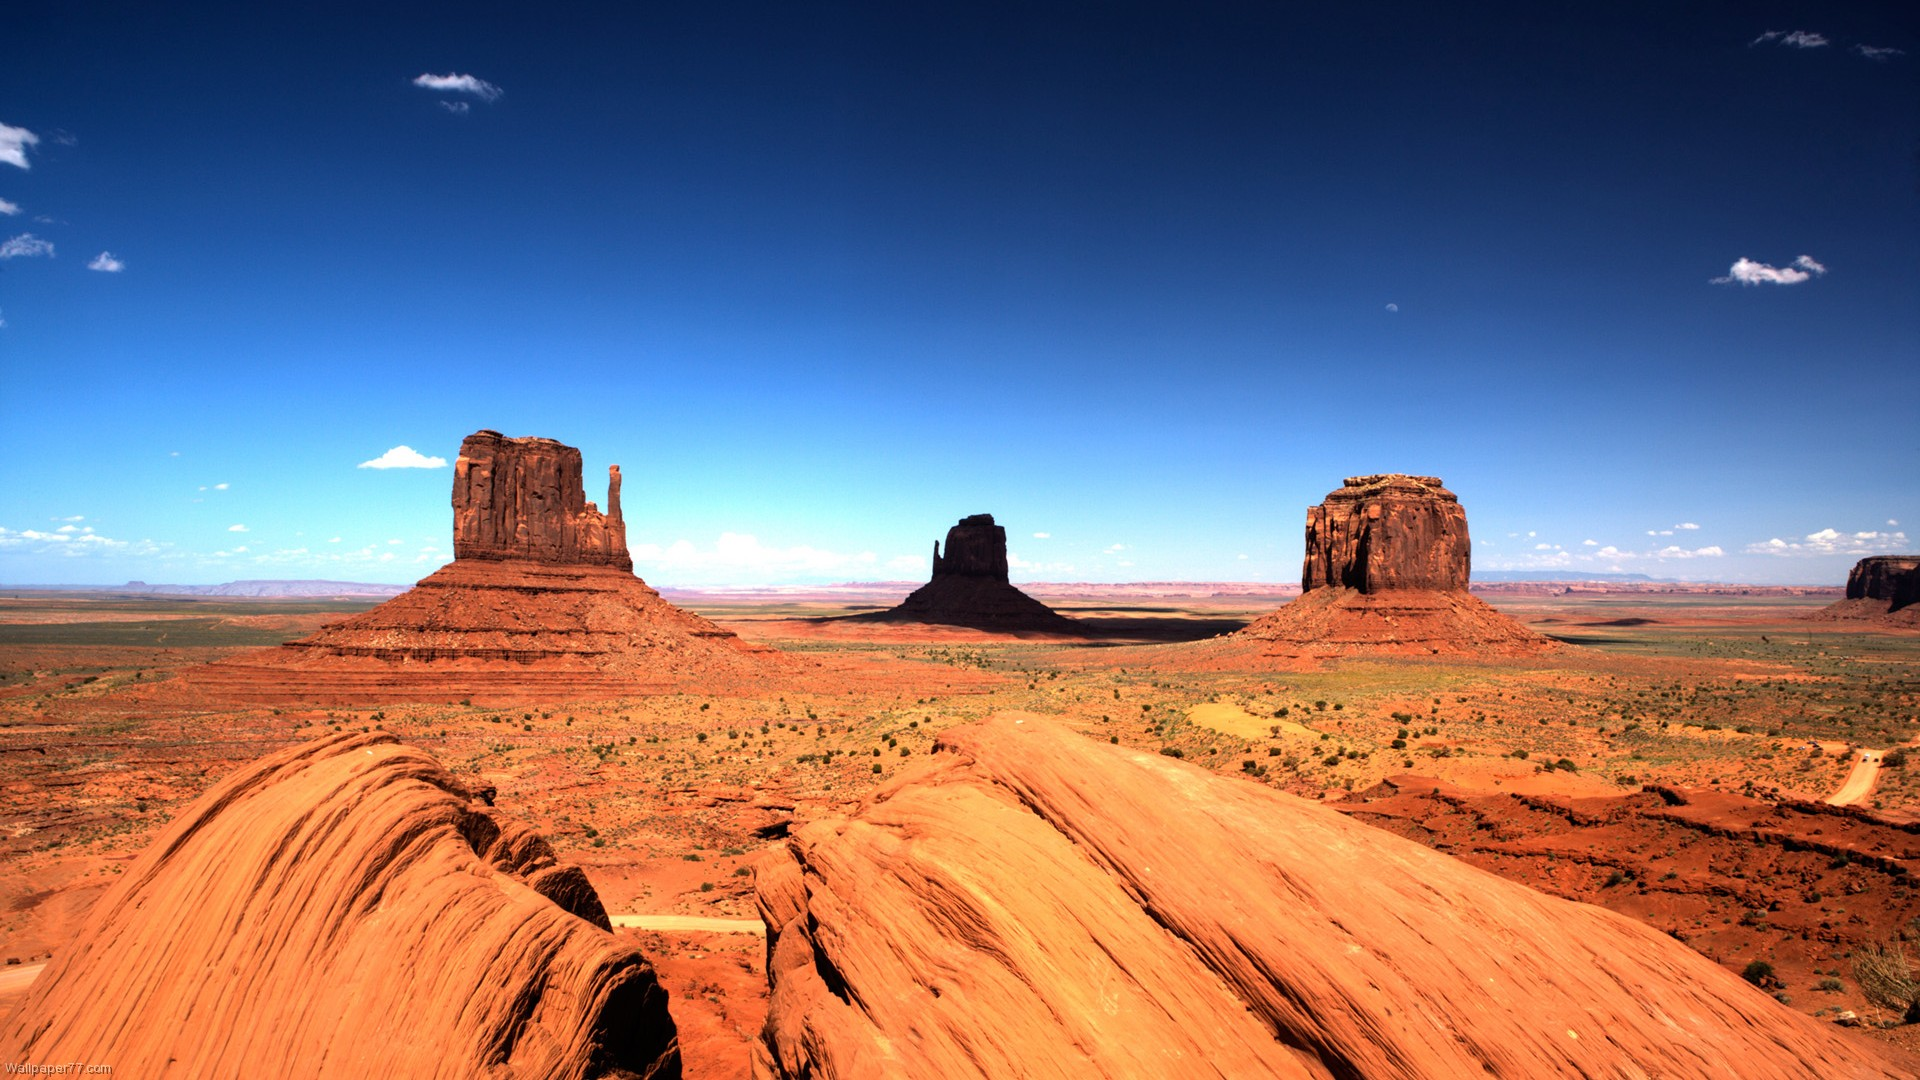 Desert Landscape Wallpaper Background 1 HD Wallpapers